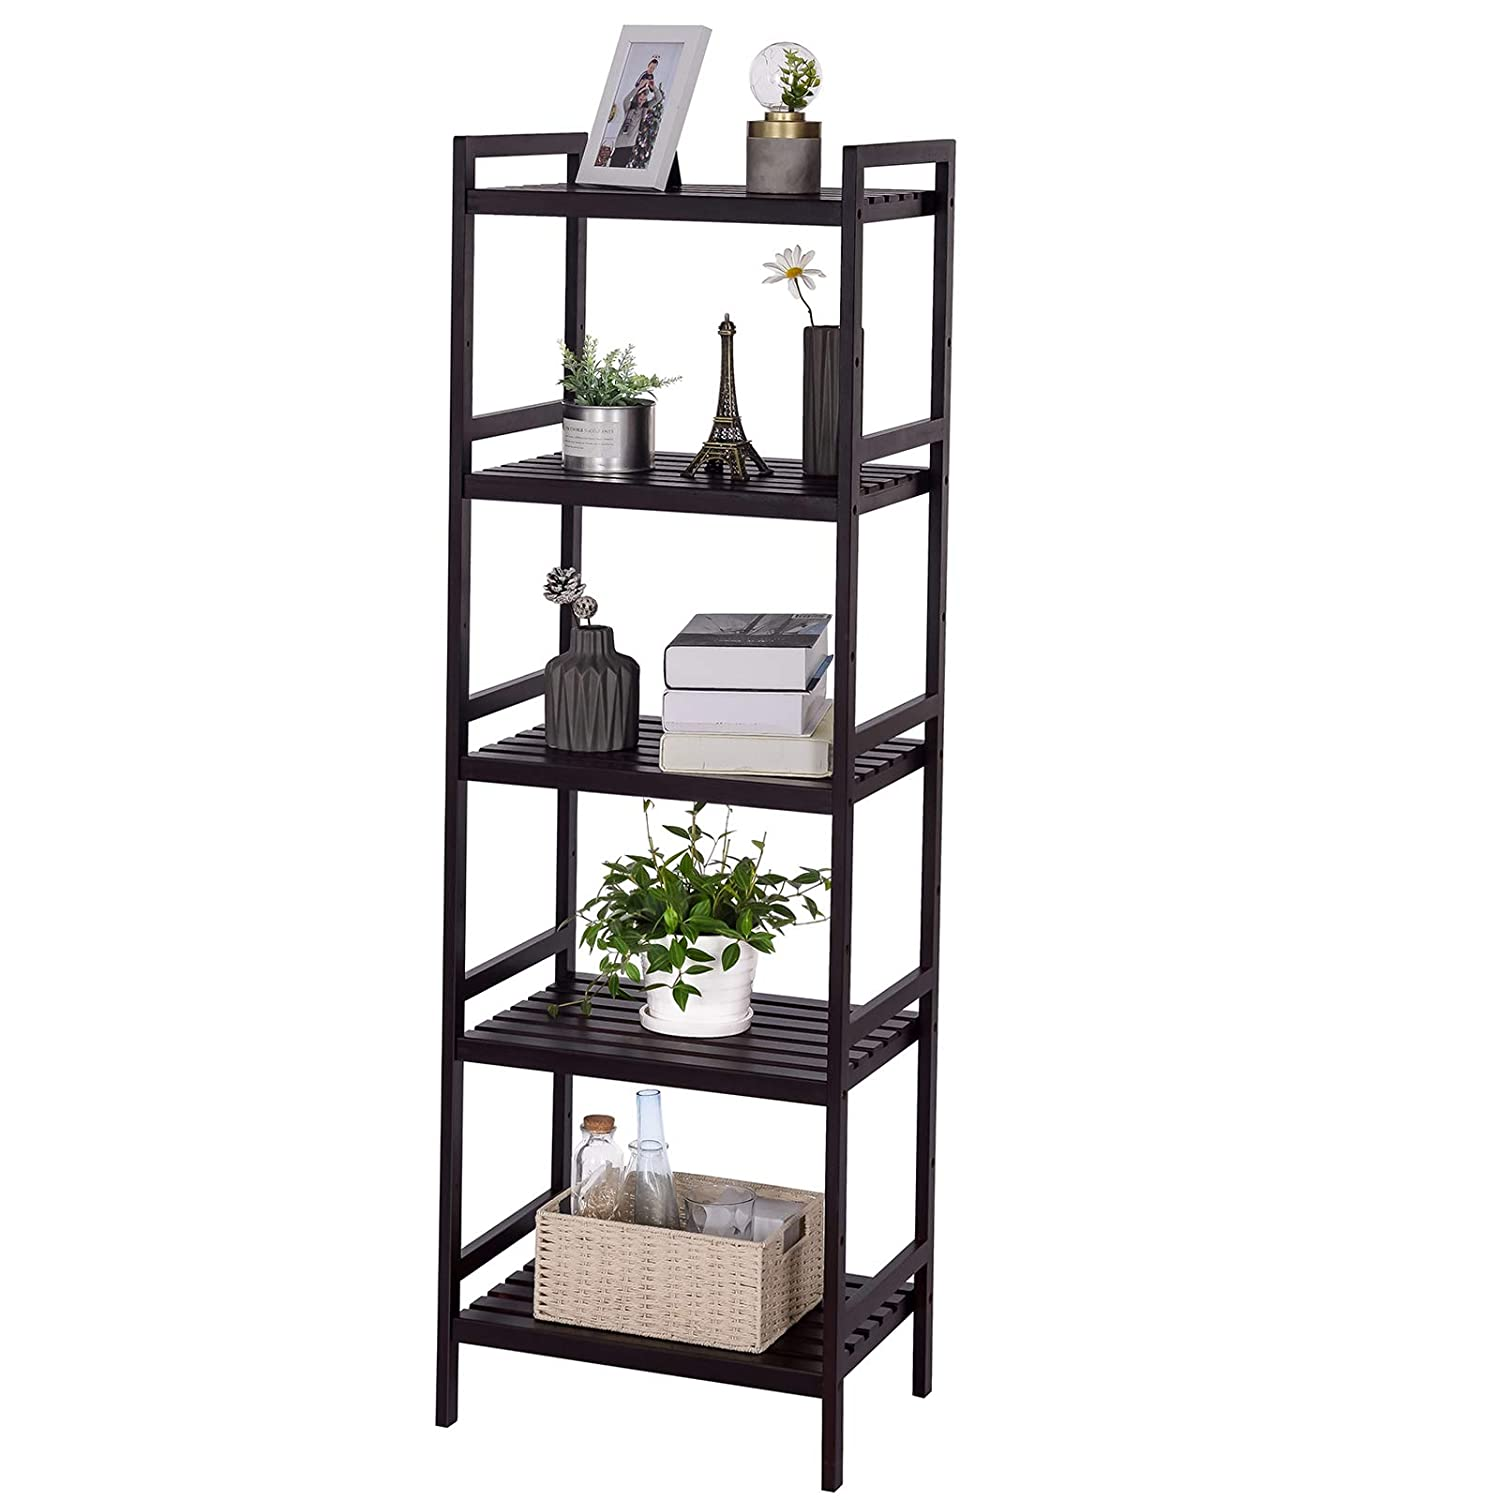 SONGMICS Multifunctional Adjustable Storage Shelf Rack,4-Tier Shelving Unit Display Stand Tower,Bookcase for Bathroom Living Room Kitchen 17.7 x 12.4 x 43.3